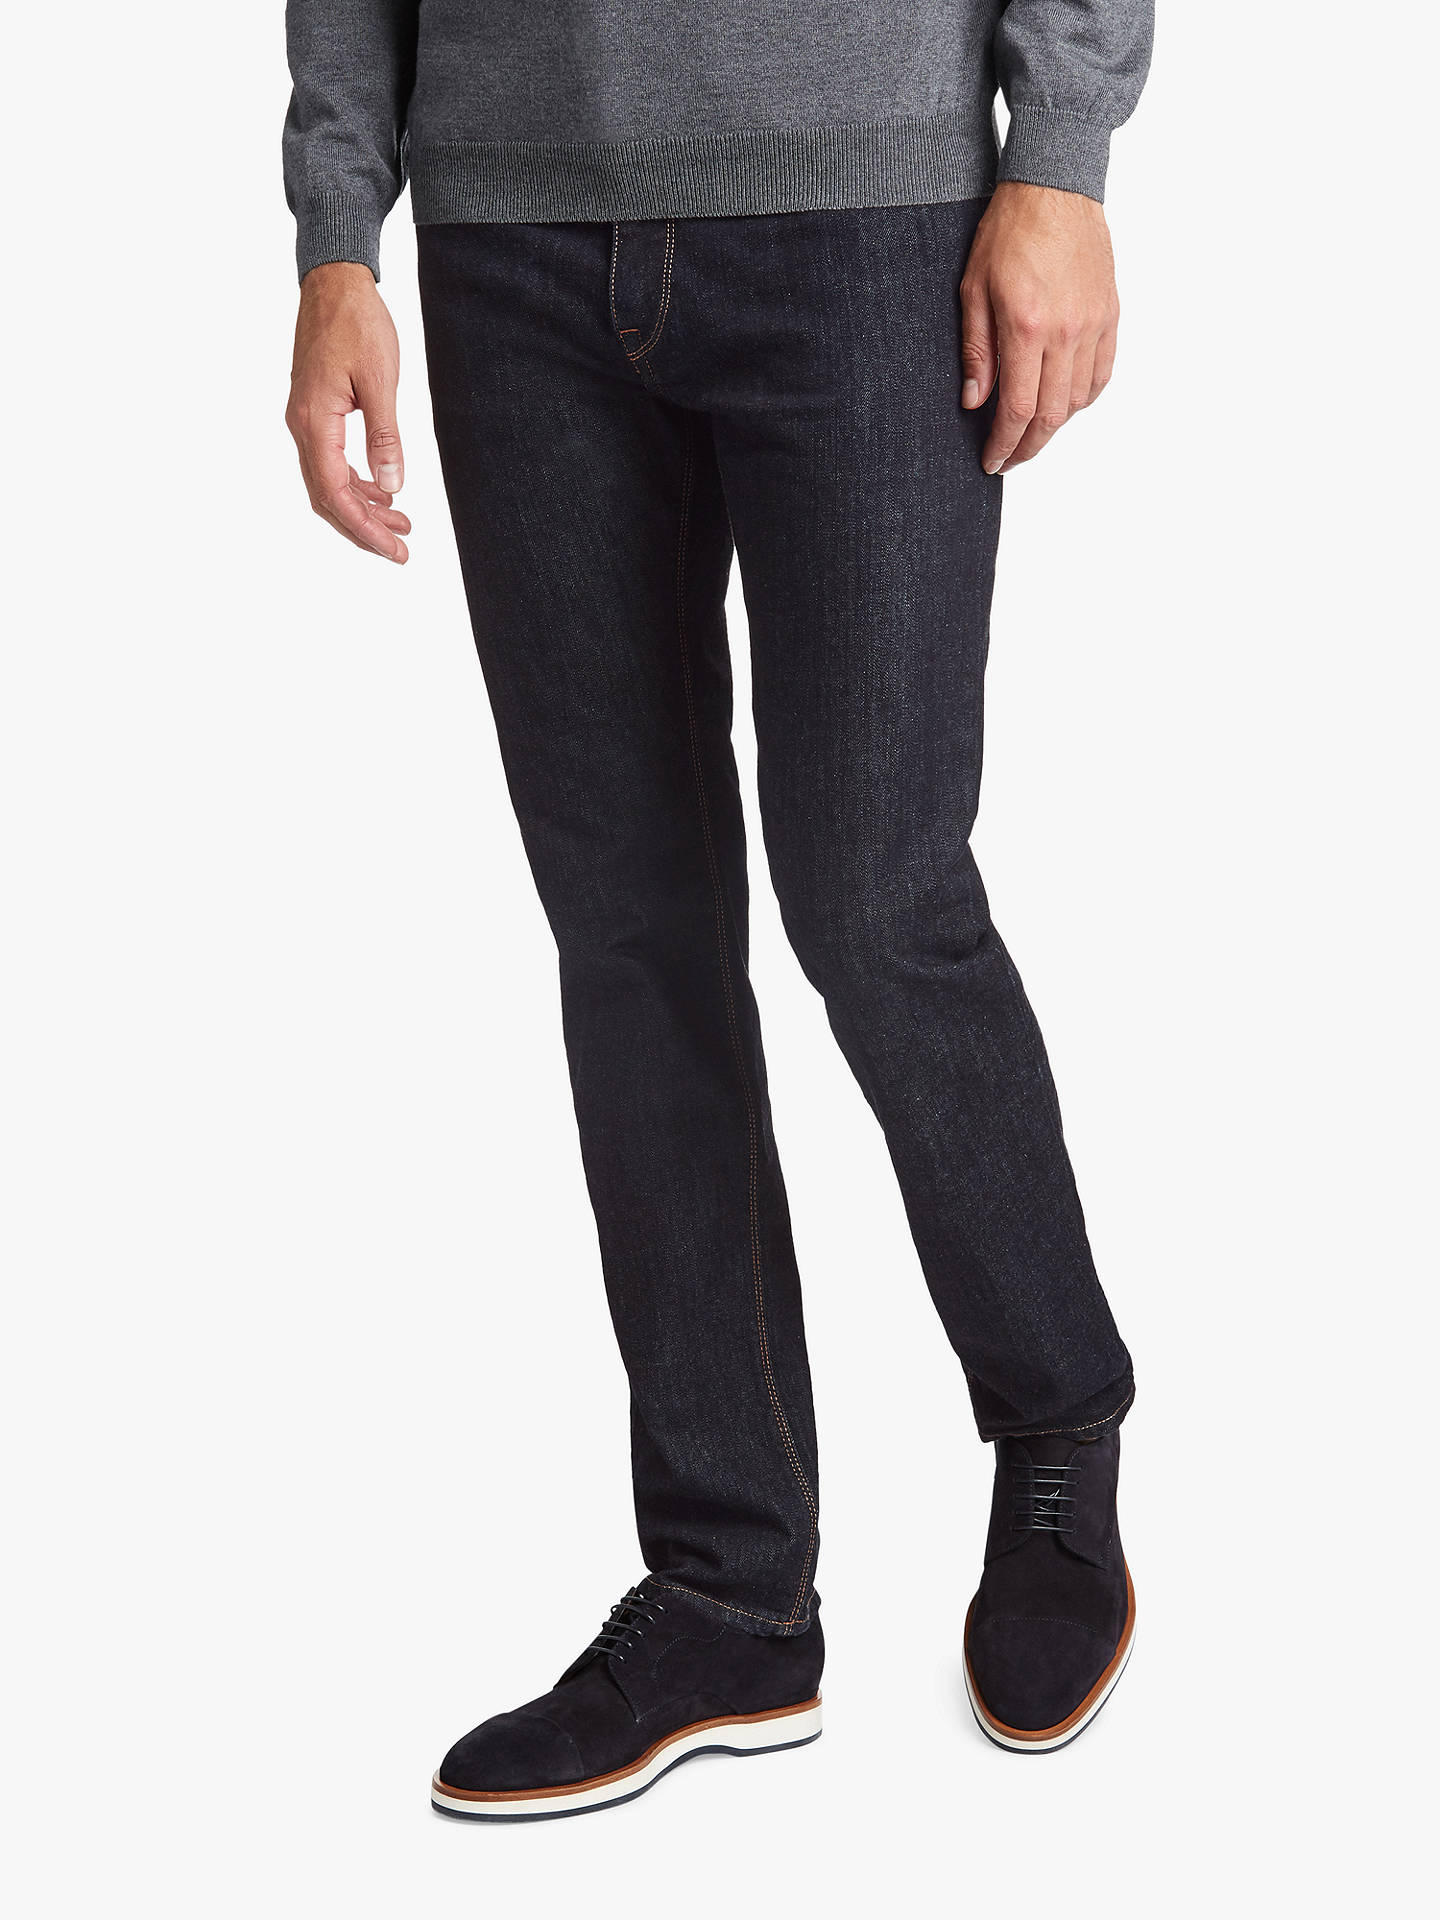 442bbecd4 Buy BOSS Maine Regular Fit Jeans, Navy, 40R Online at johnlewis.com ...